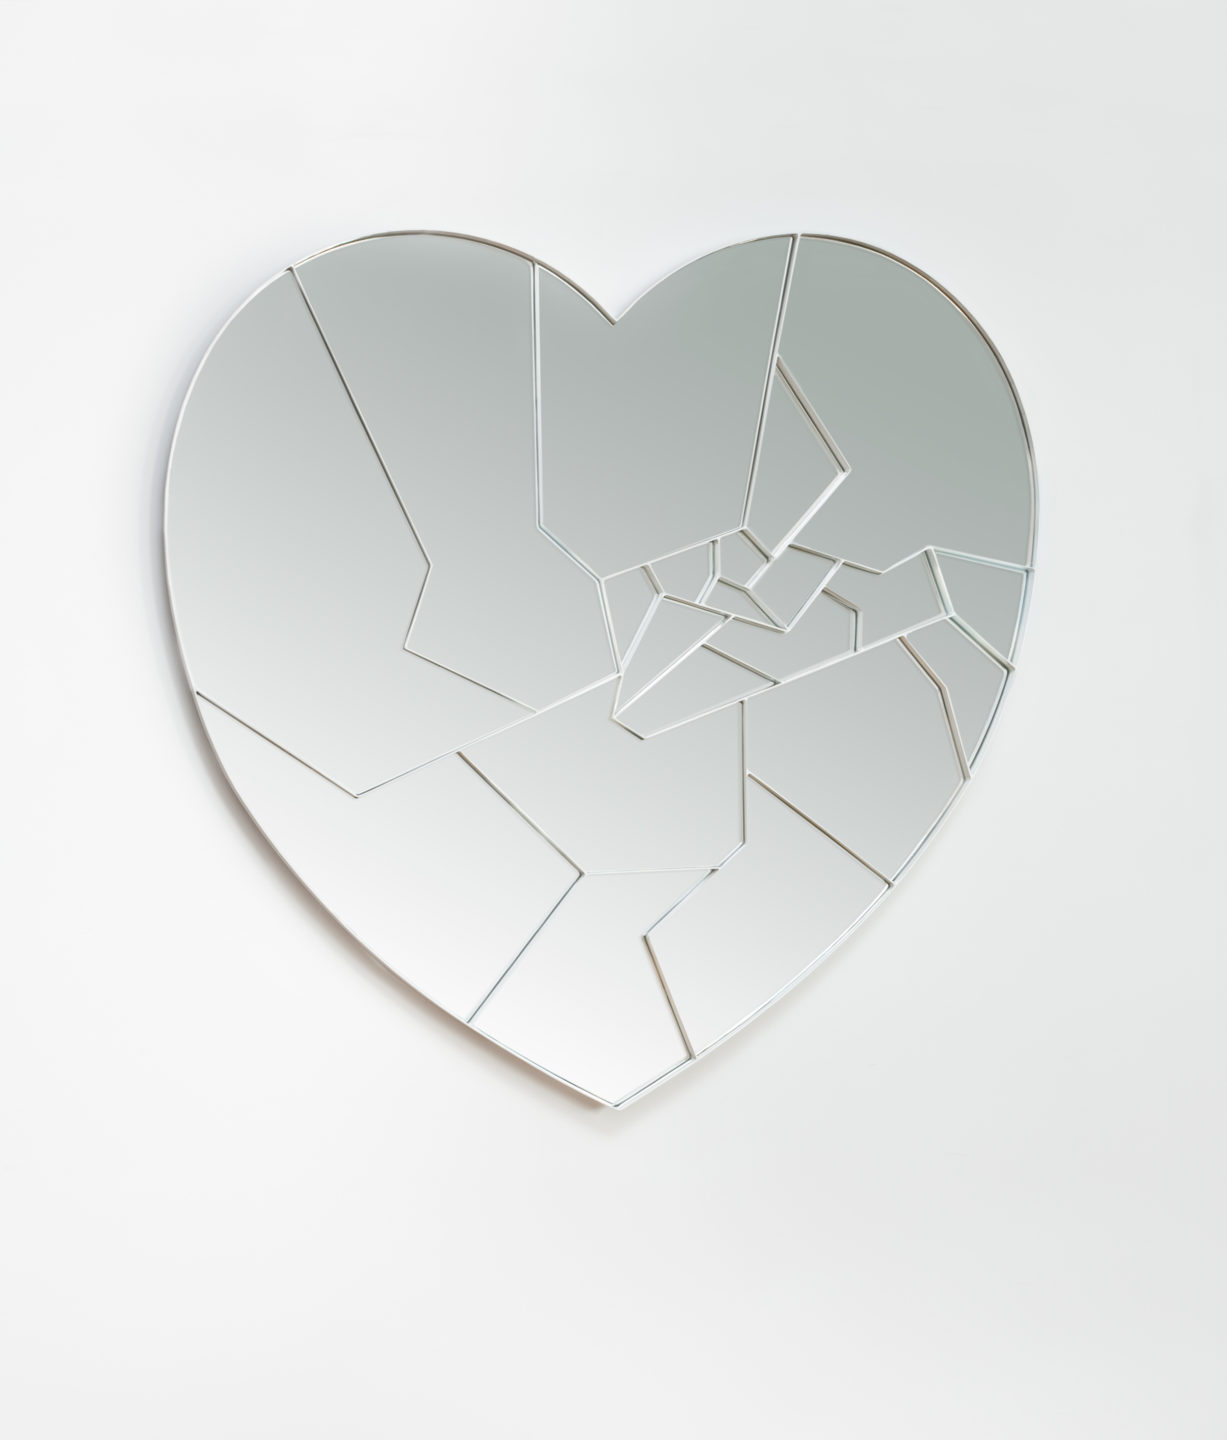 WILD-AT-HEART-mirror-2-nicole-fuller-product-information